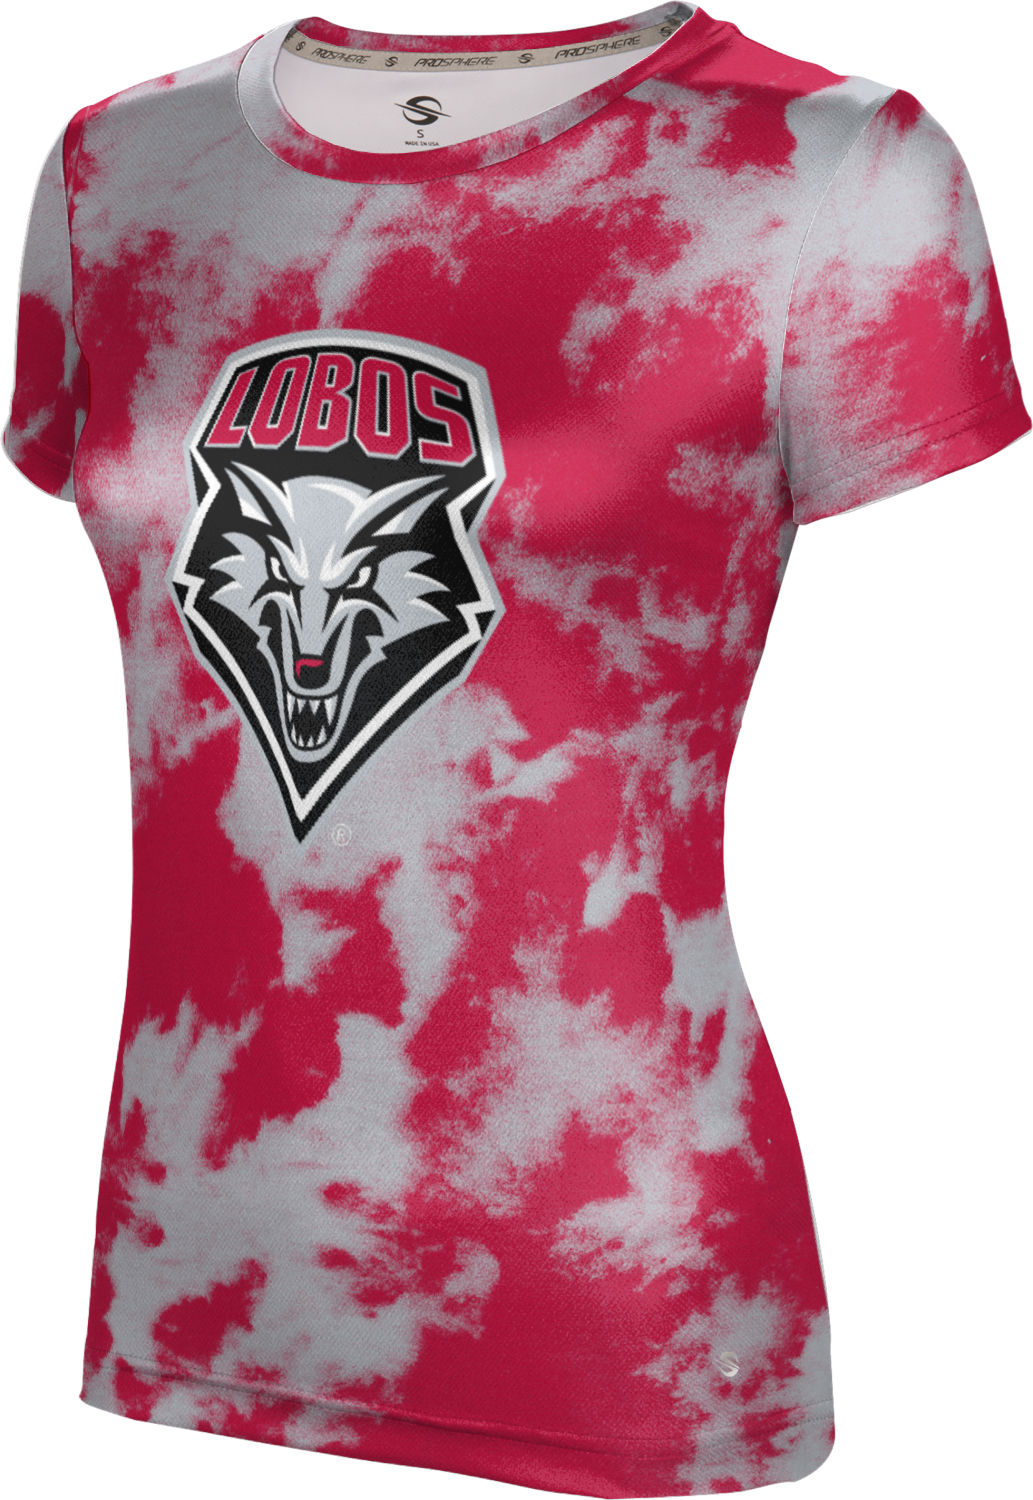 ProSphere Girls' The University of New Mexico Grunge Tech Tee